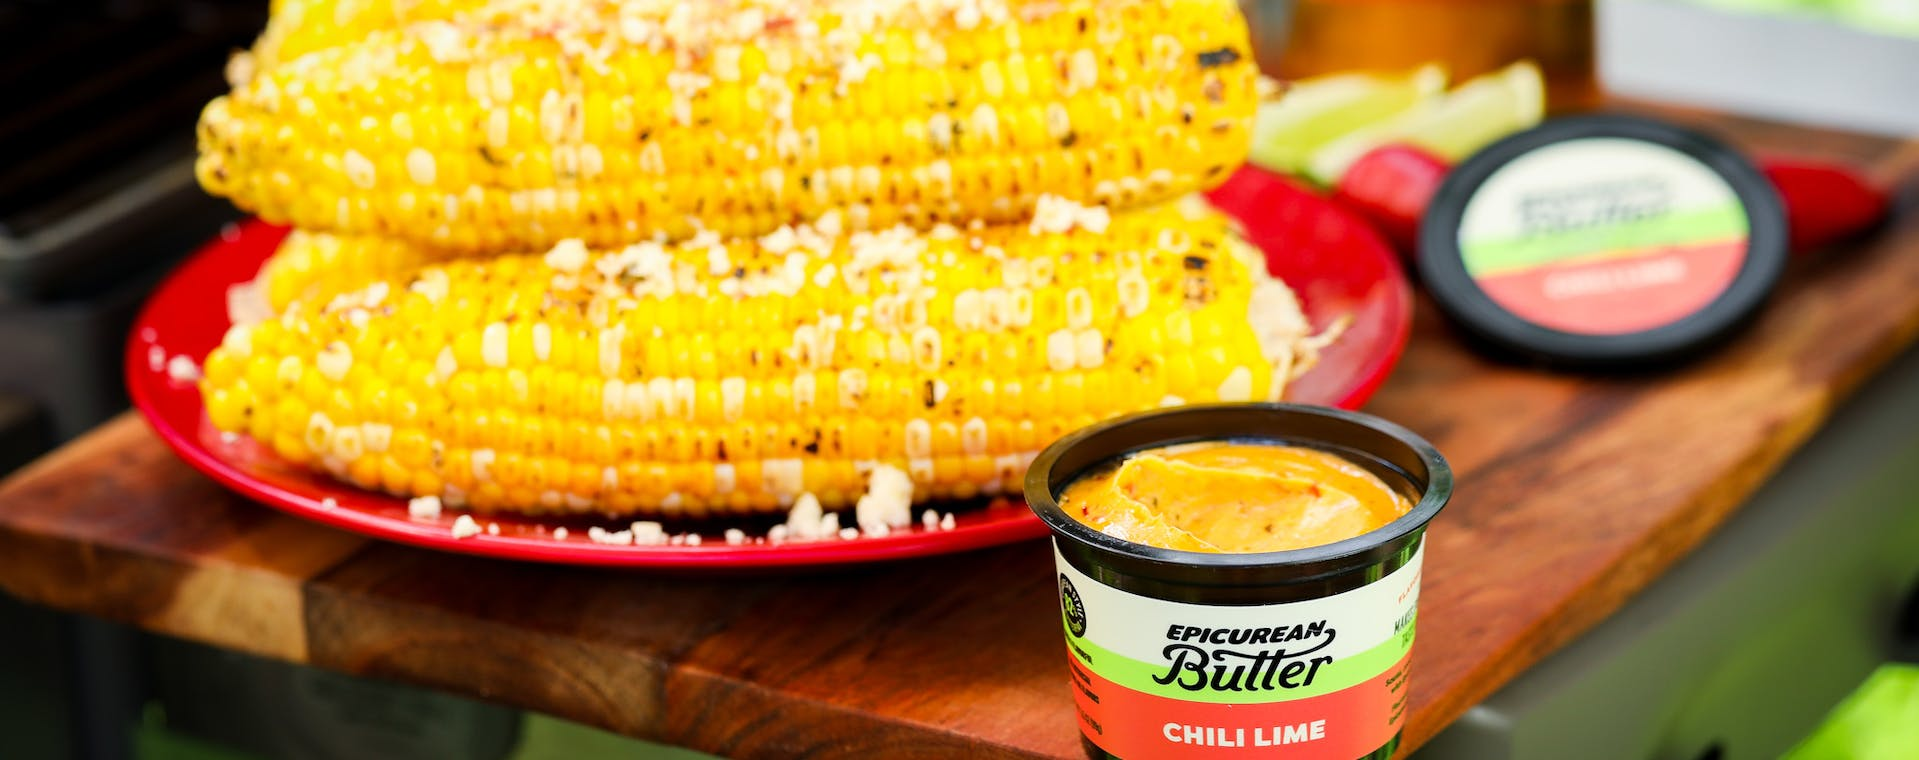 Street Corn with Epicurean Butter Chili Lime Flavored Butter